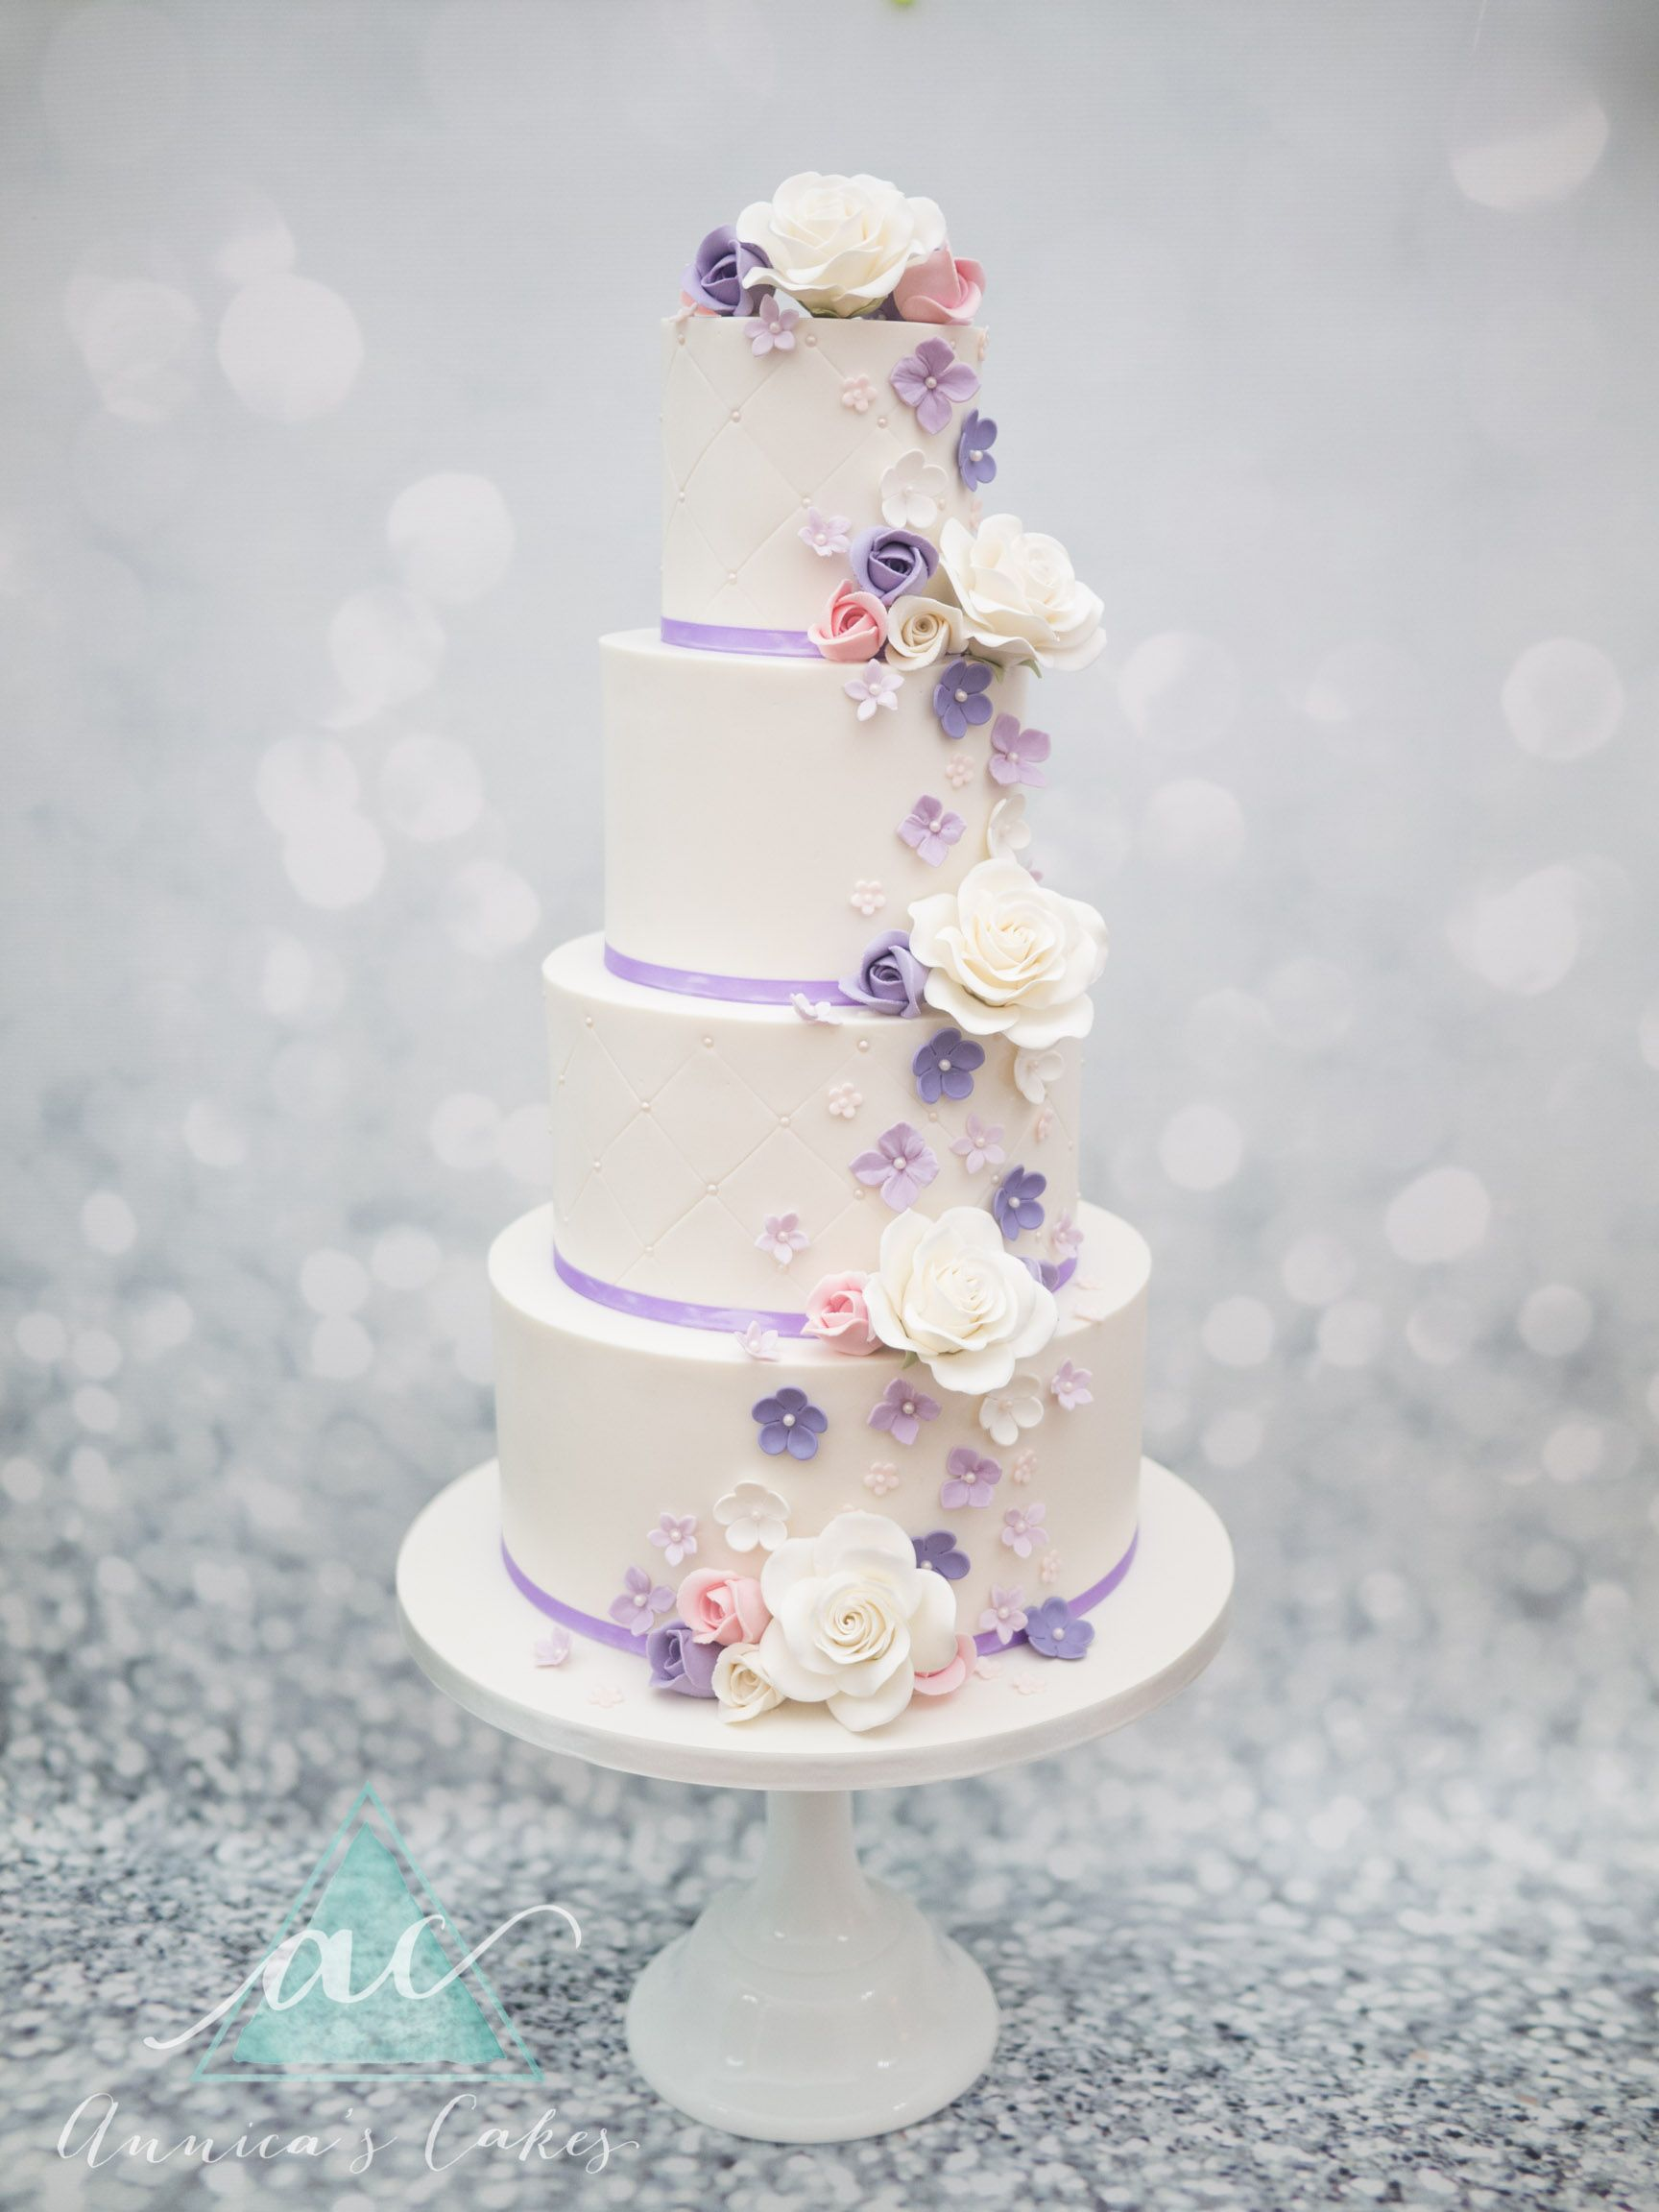 Pin Op Wedding Cakes Annica S Cakes Nl